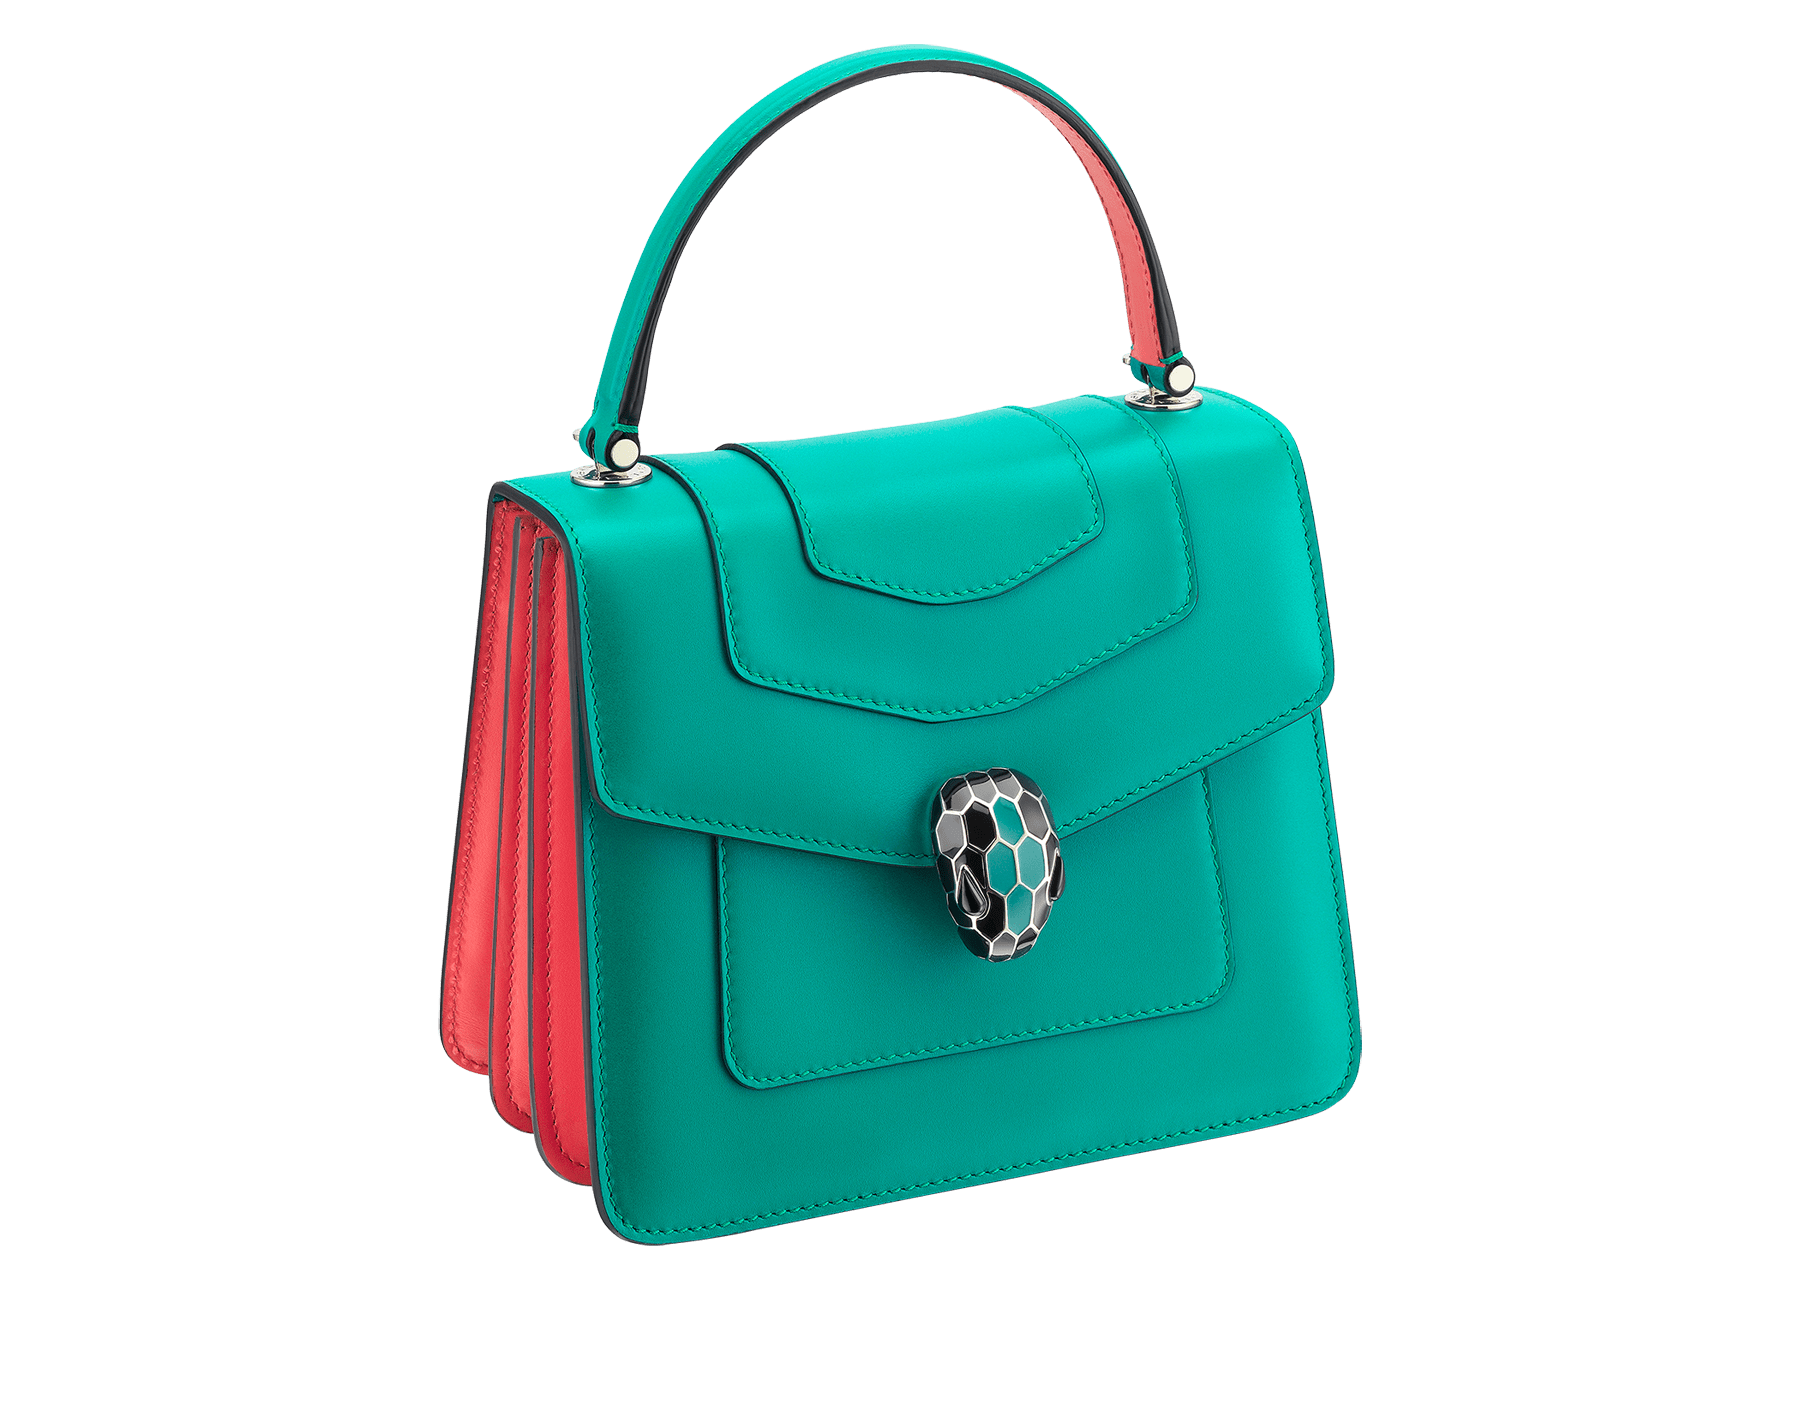 Serpenti Forever crossbody bag in tropical turquoise smooth calf leather body and sea star coral calf leather sides. Snakehead closure in light gold plated brass decorated with tropical turquoise and black enamel, and black onyx eyes. 287964 image 2